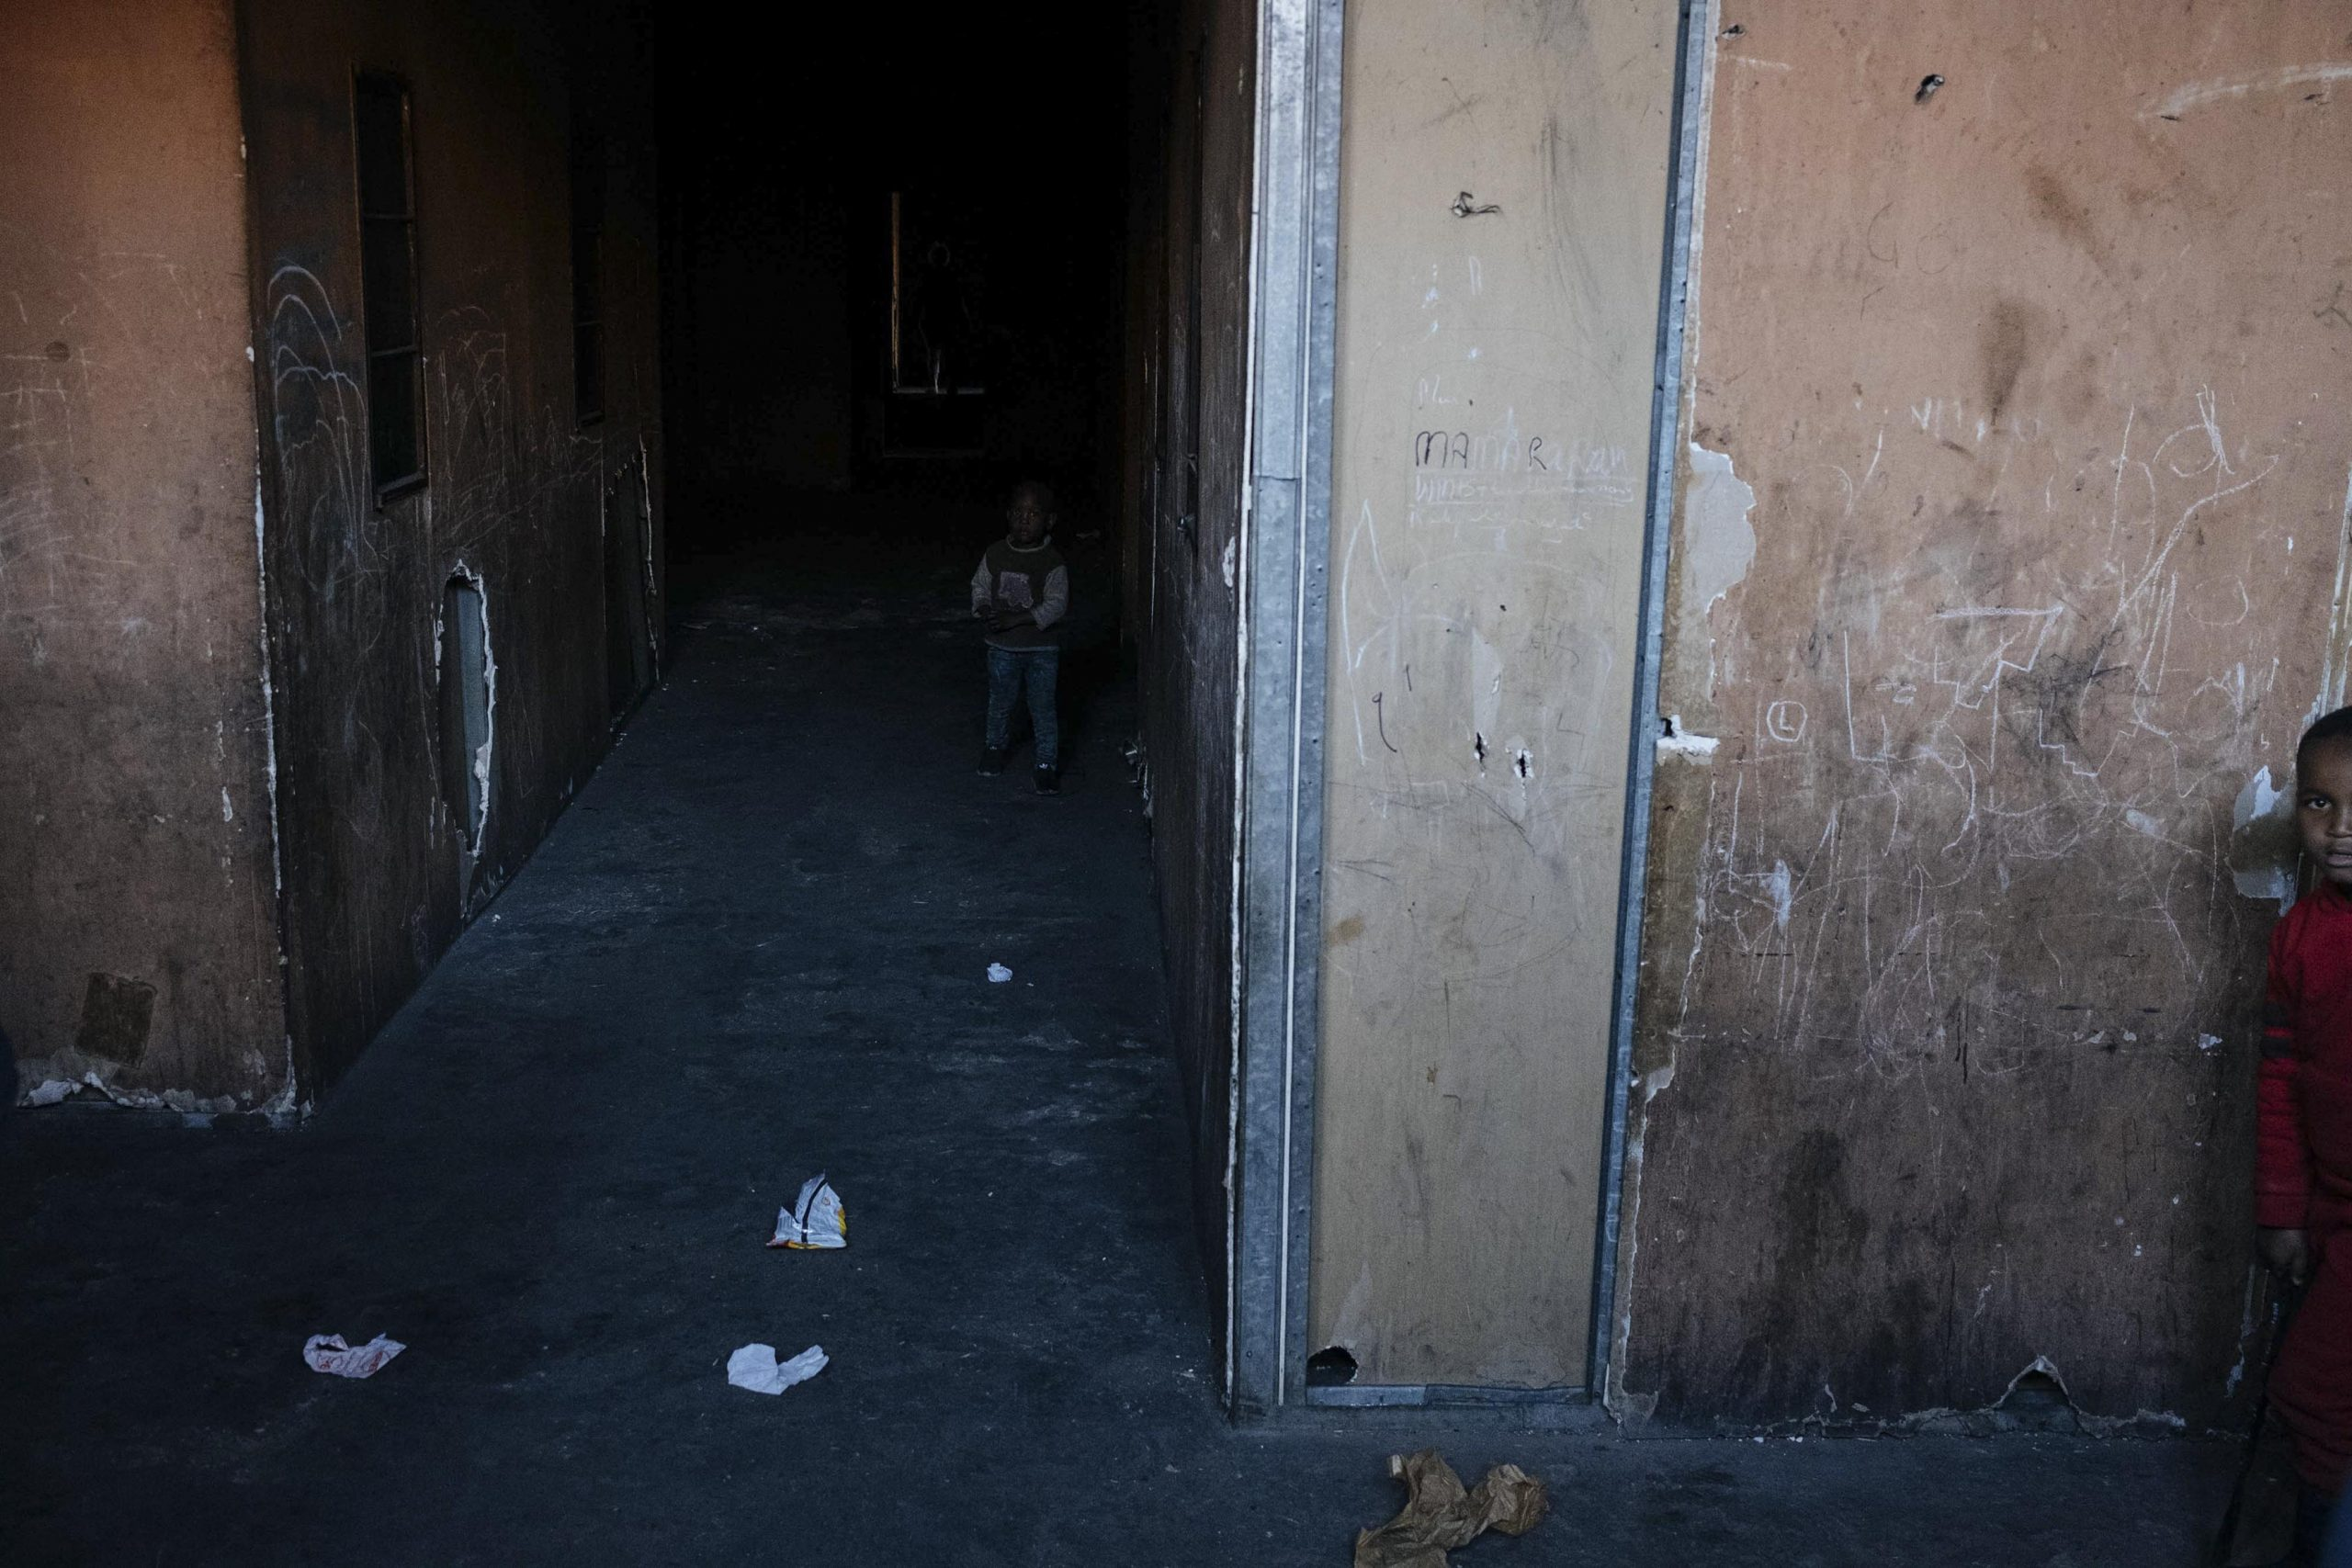 16 July 2020: Children play in the corridor of an inner-city building. Characterised by dark passageways because of the lack of electricity, derelict buildings such as this one are vulnerable to outbreaks of fire as residents rely heavily on paraffin for cooking and warmth. Those inhabiting these spaces are often living at the extremes of urban existence, where rent is affordable but conditions are crowded, cramped, dangerous and insecure.